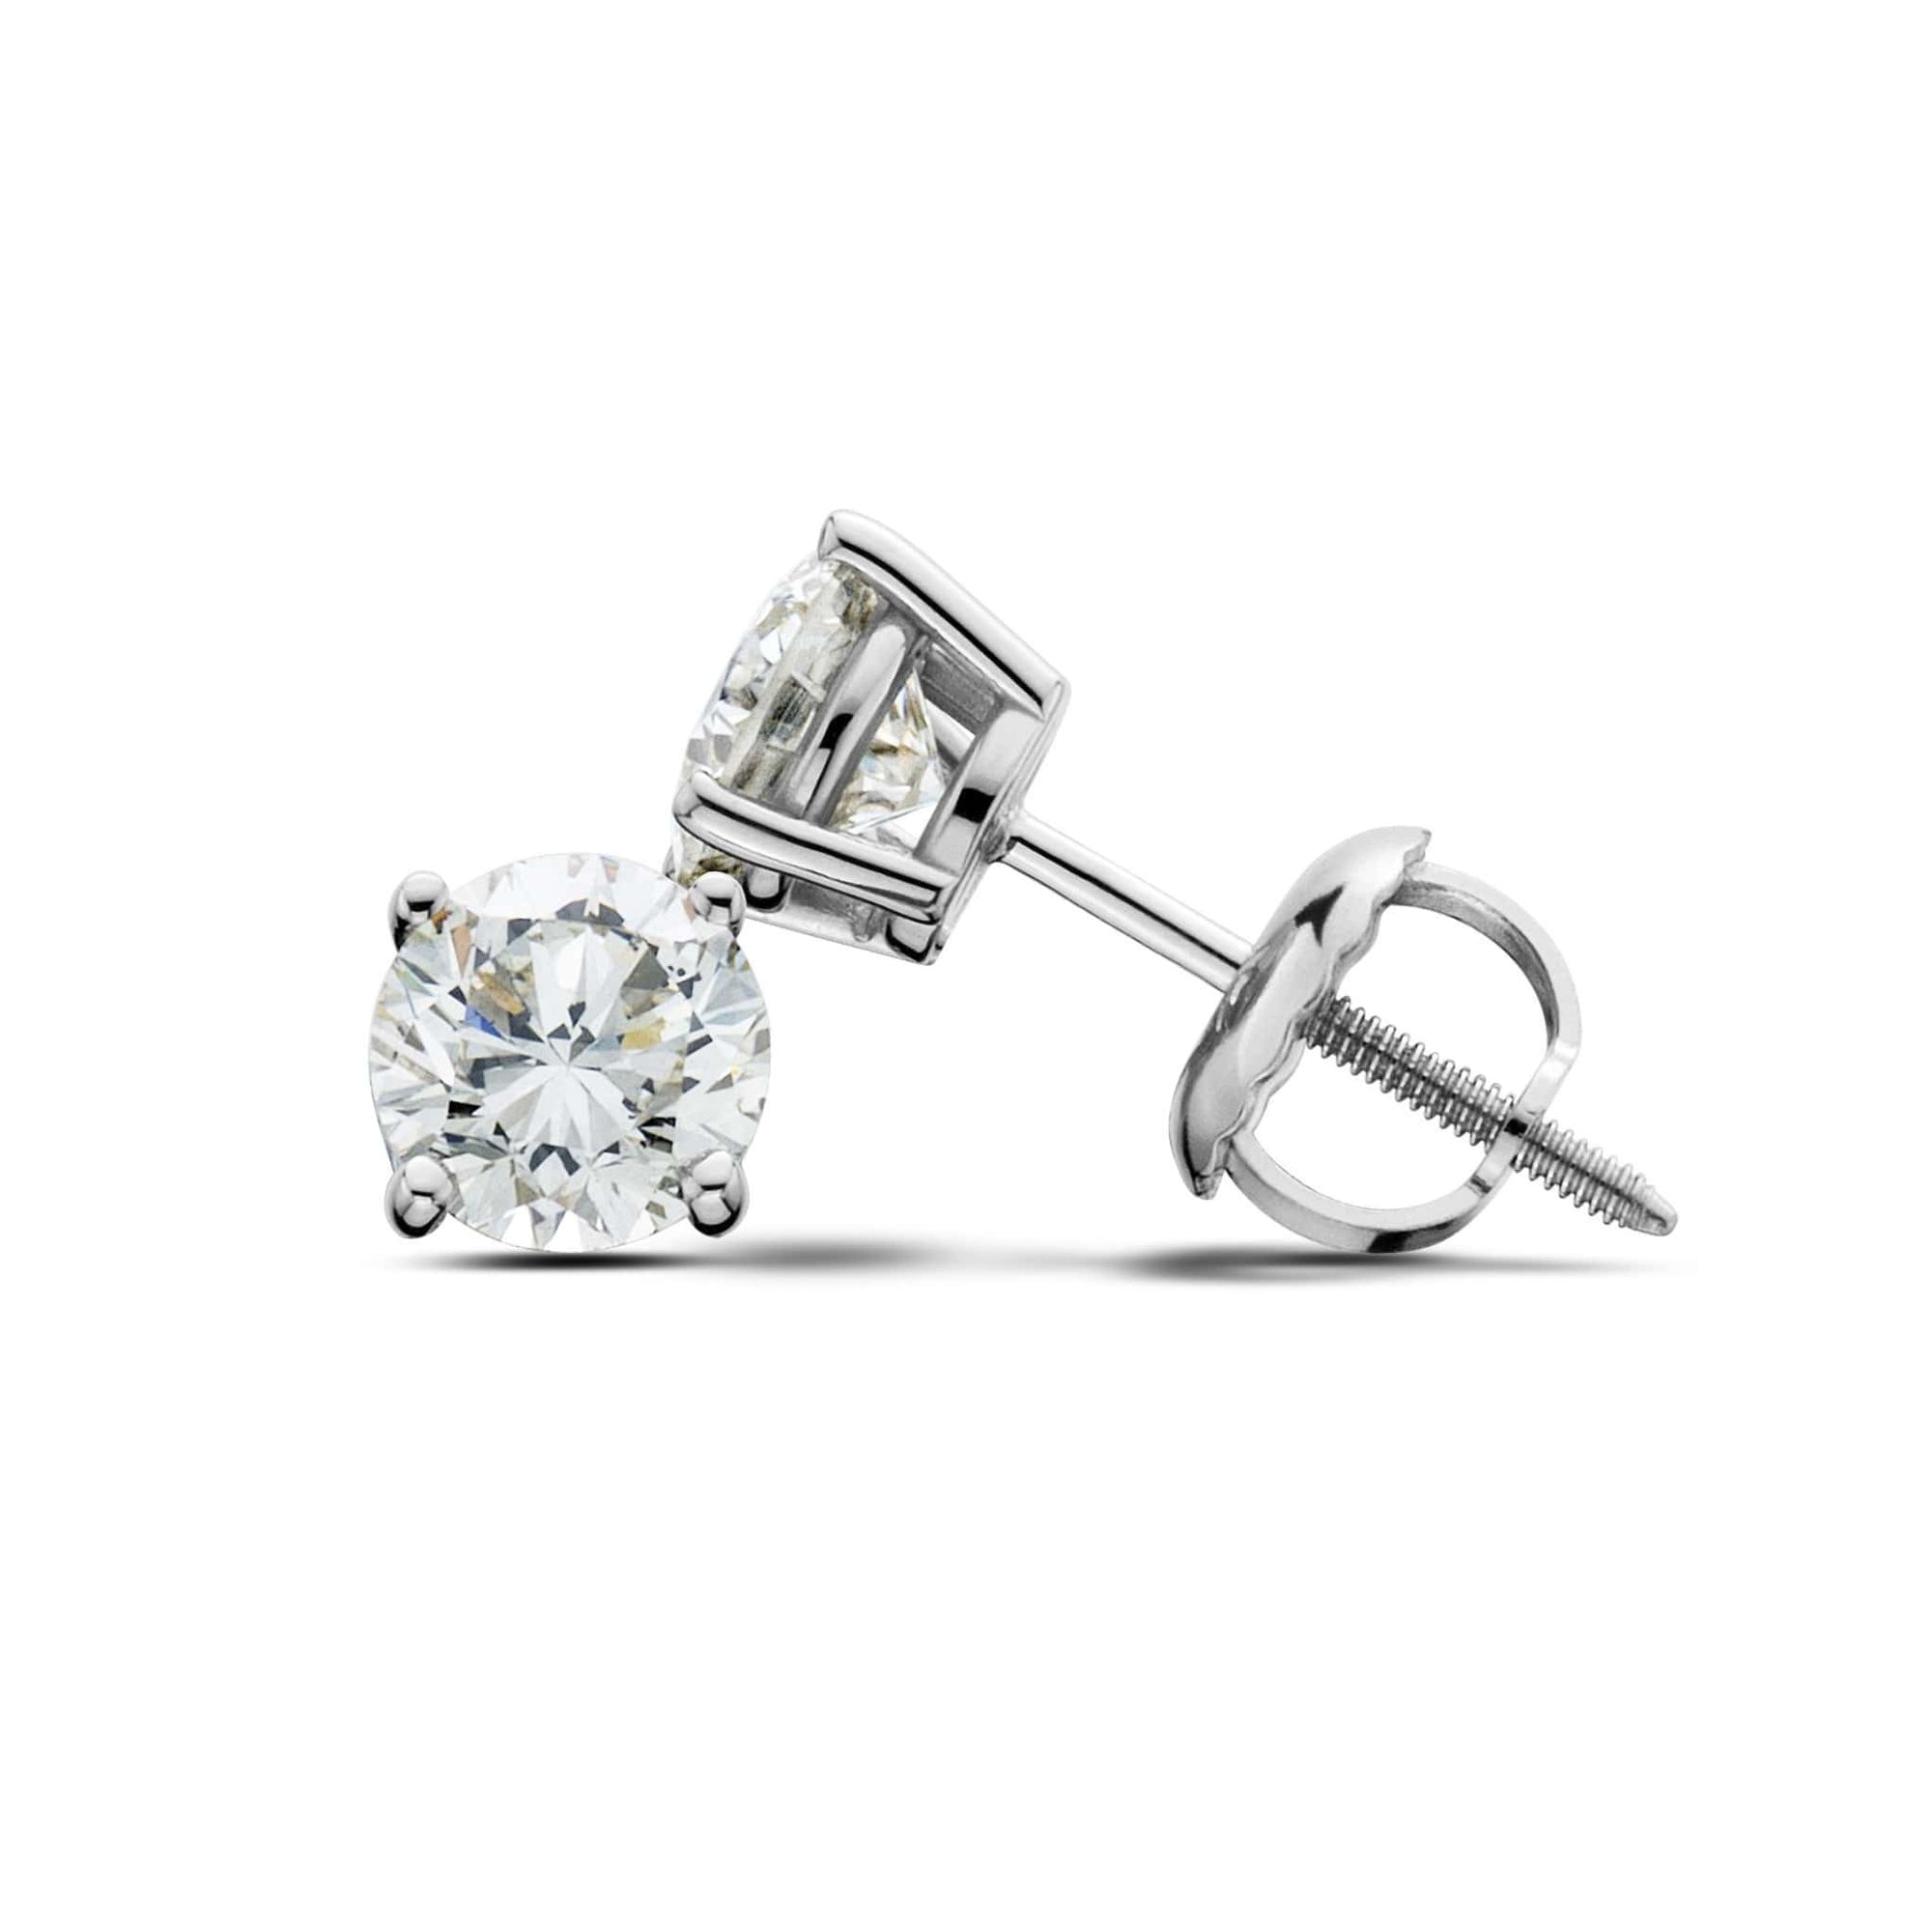 14K White Gold Diamond Stud Earrings (1.05 CT. TW.) at Arman's Jewellers